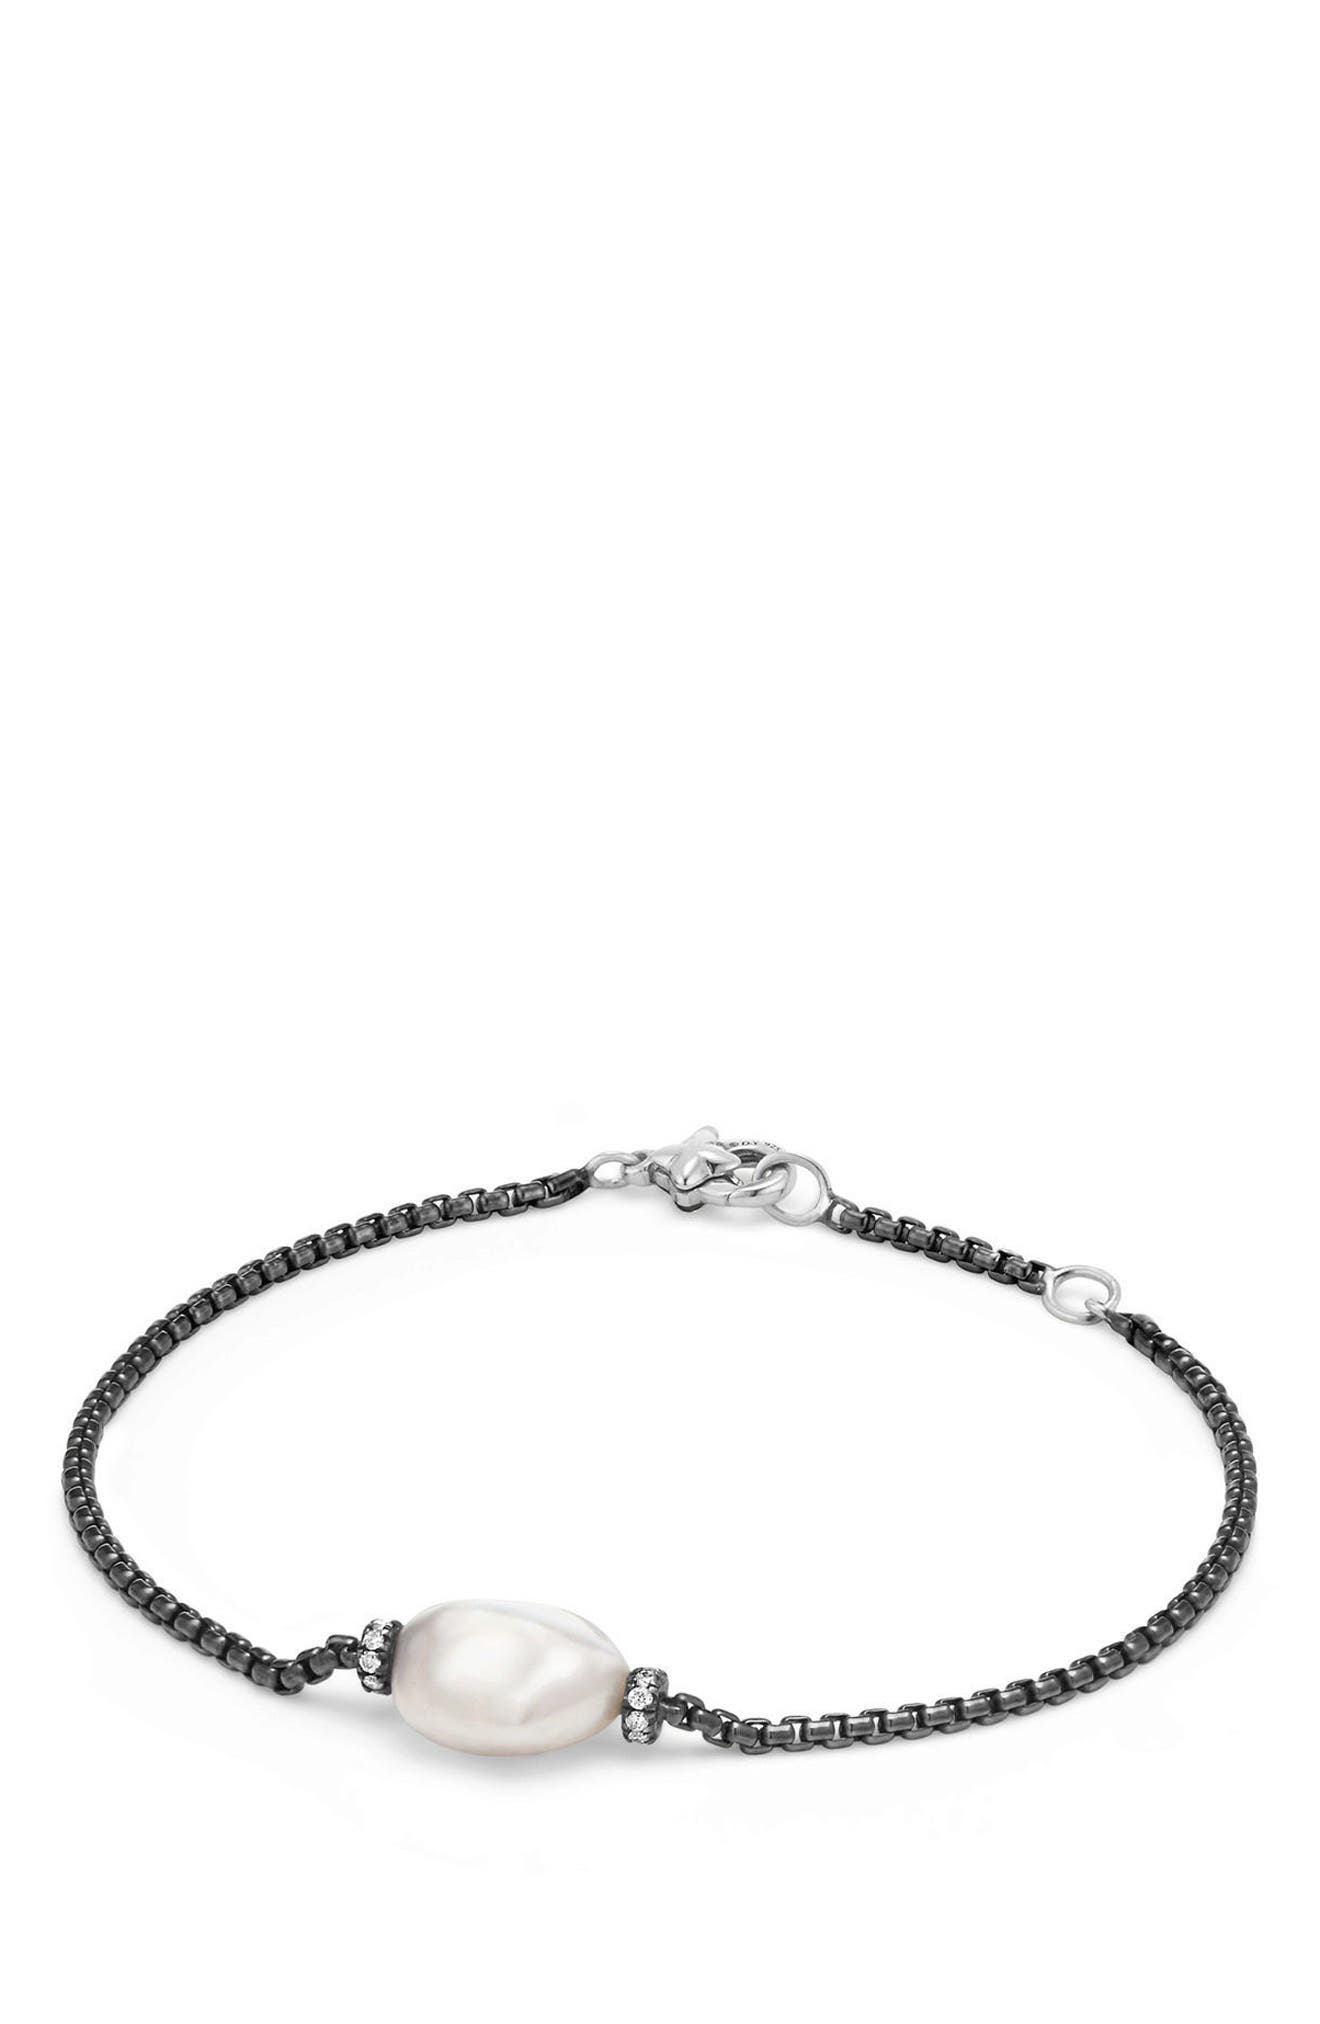 Solari Station Bracelet with Diamonds and Pearl,                             Main thumbnail 1, color,                             SILVER/ PEARL